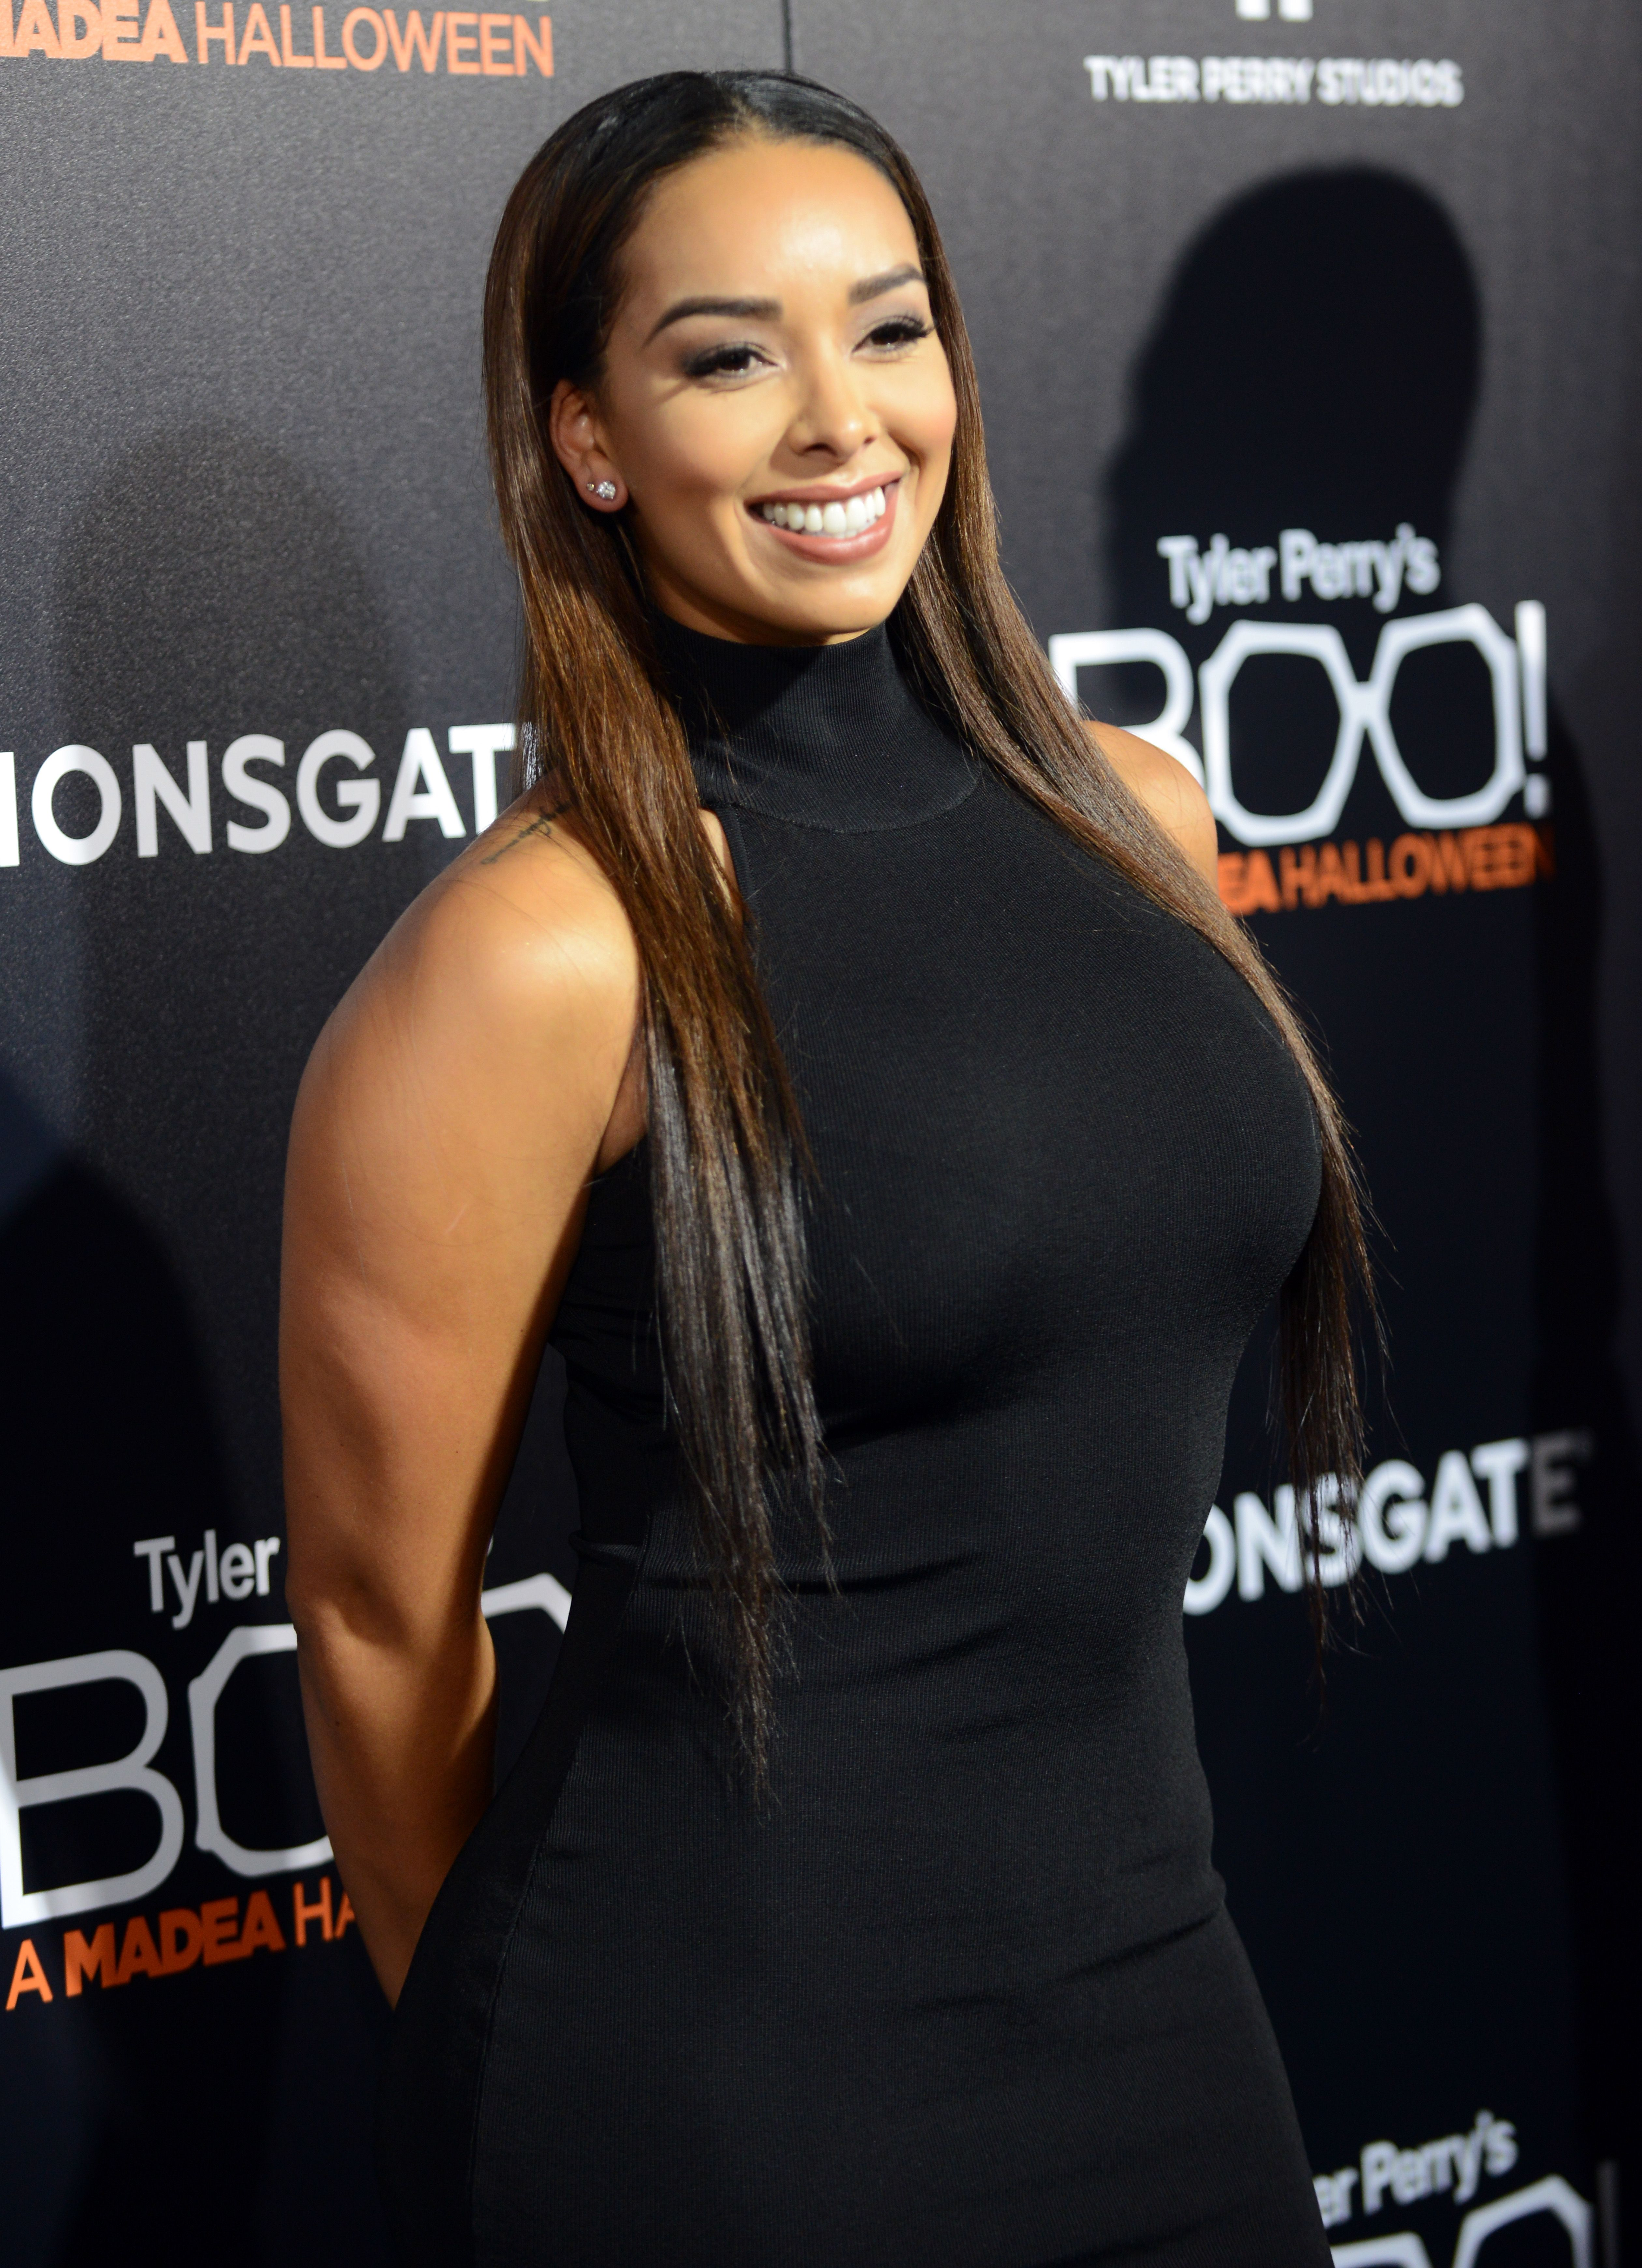 """Reality star Gloria Govan attends the premiere of Lionsgate's """"Boo! A Madea Halloween"""" held at ArcLight Cinemas Cinerama Dome in October 2016 in Hollywood, California.   Source: Getty Images"""